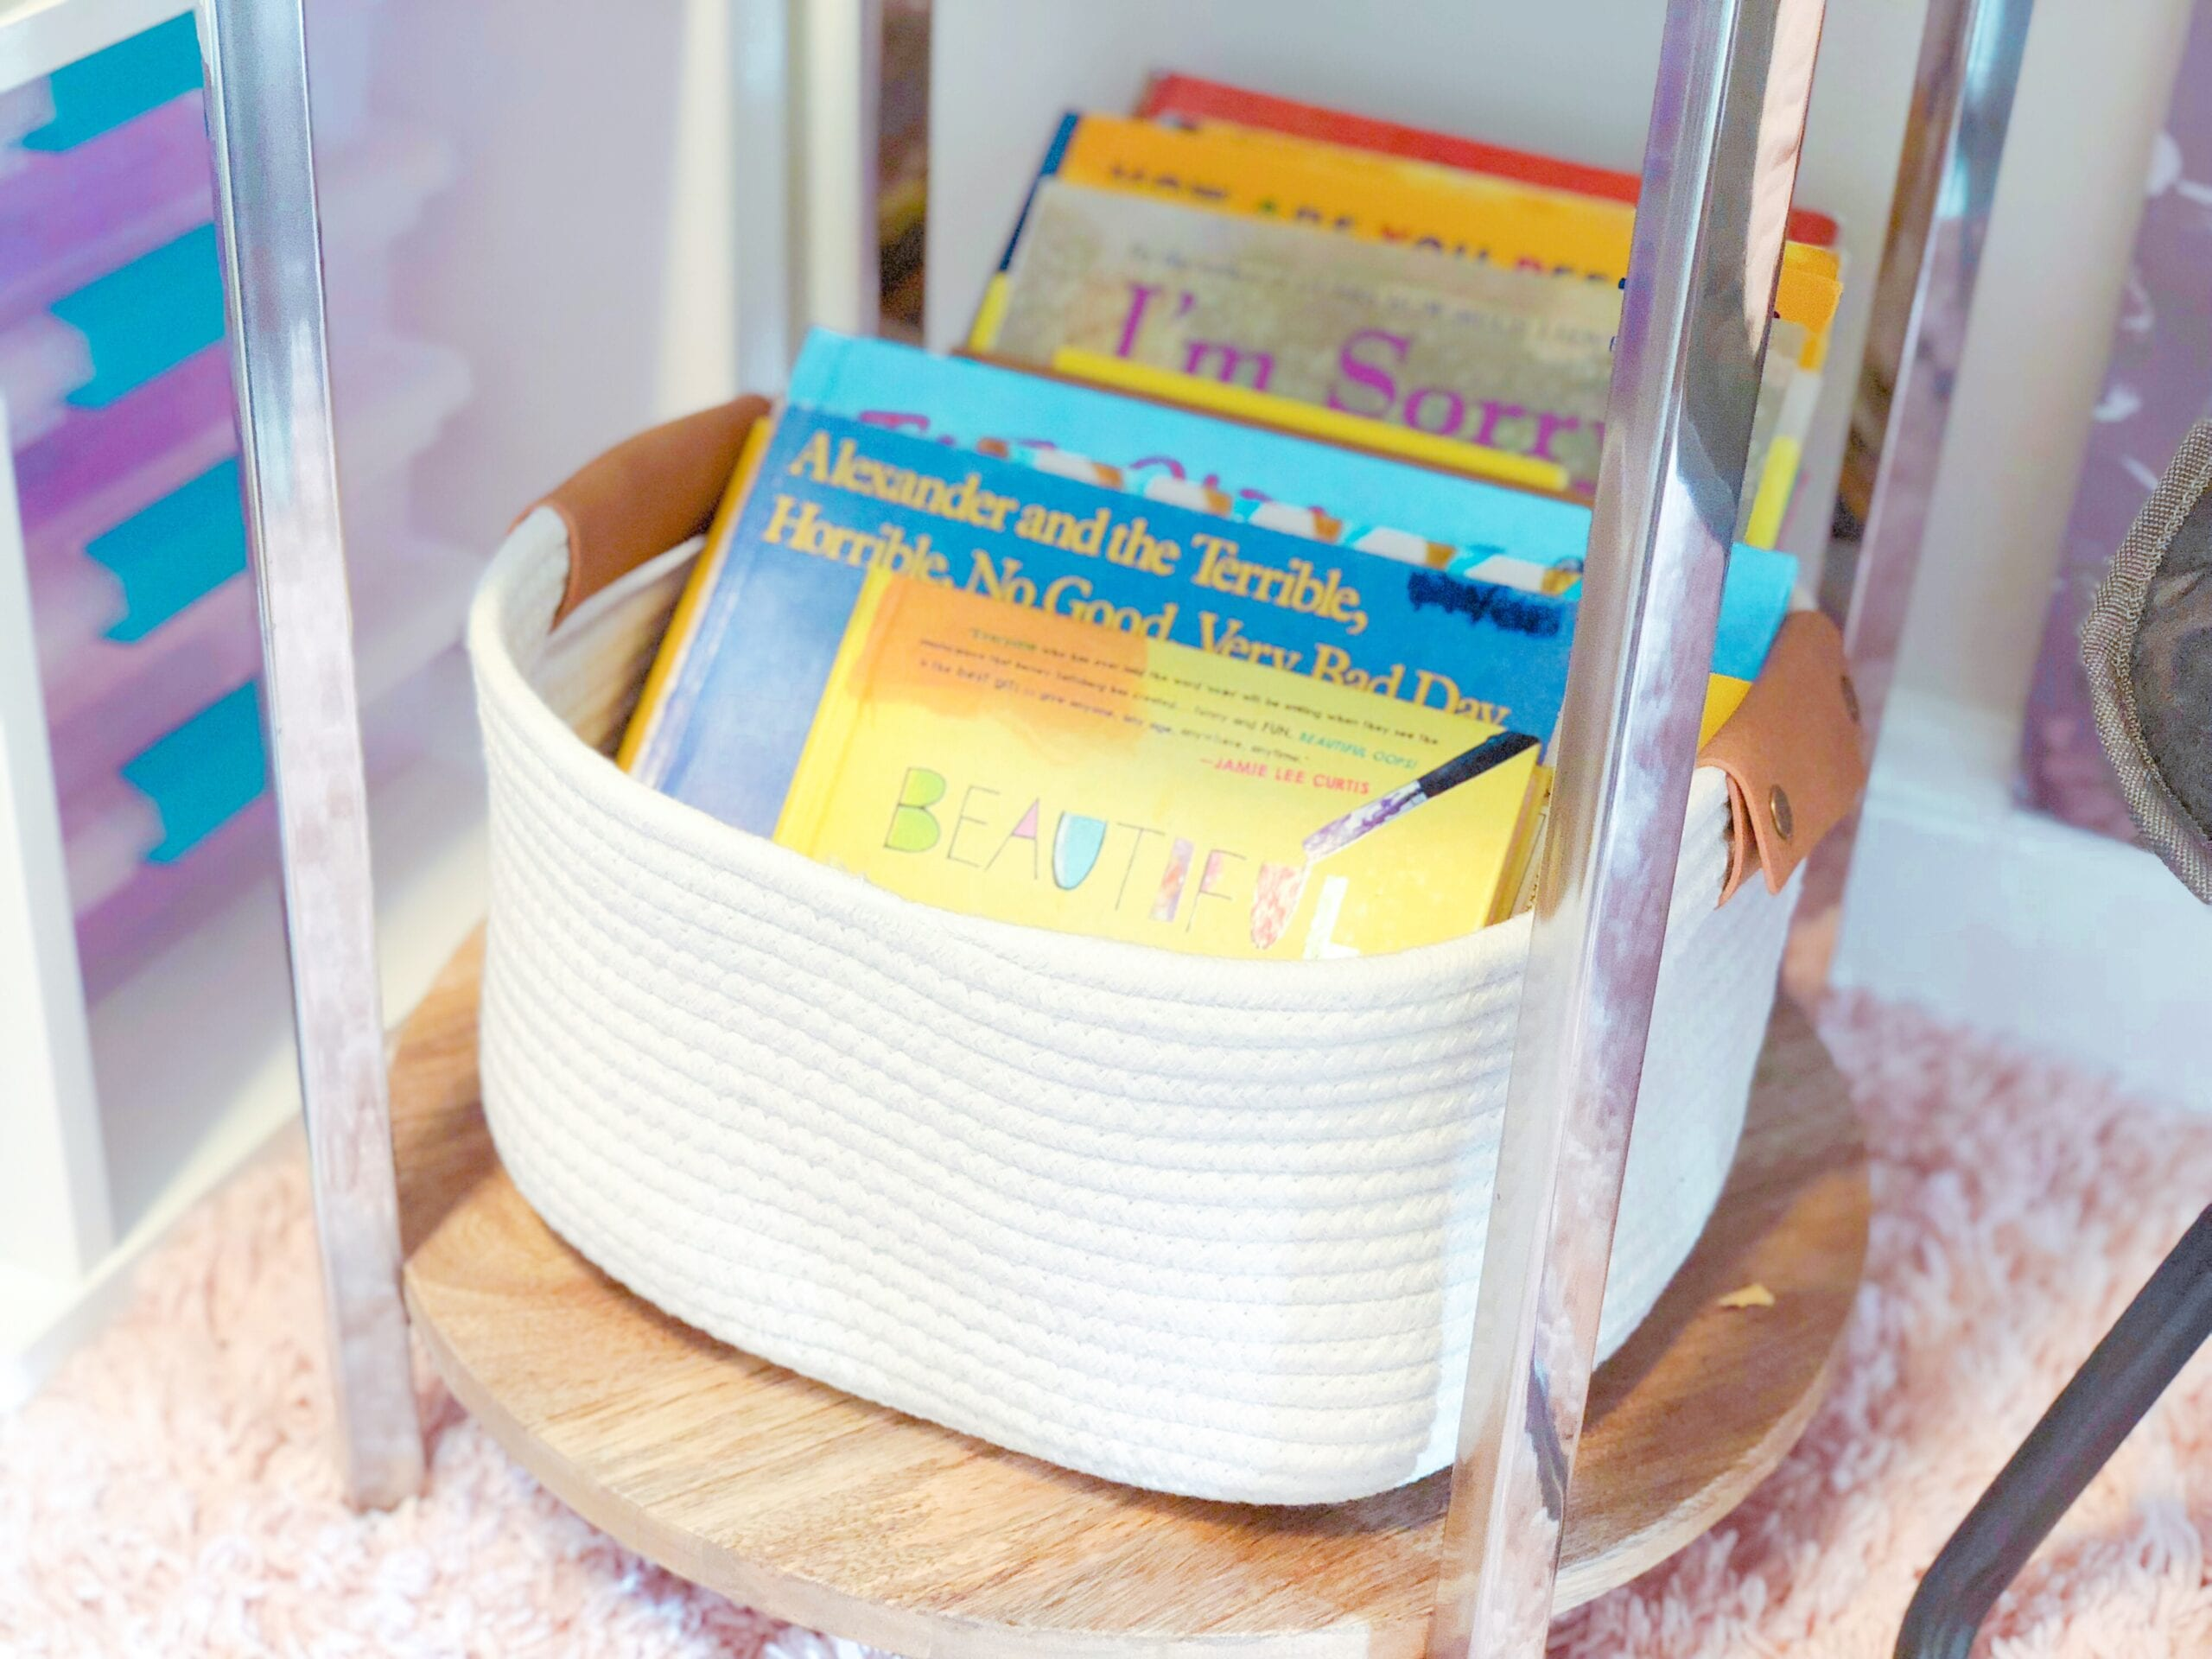 feeling books- a list of books that help students identify and work through their feelings